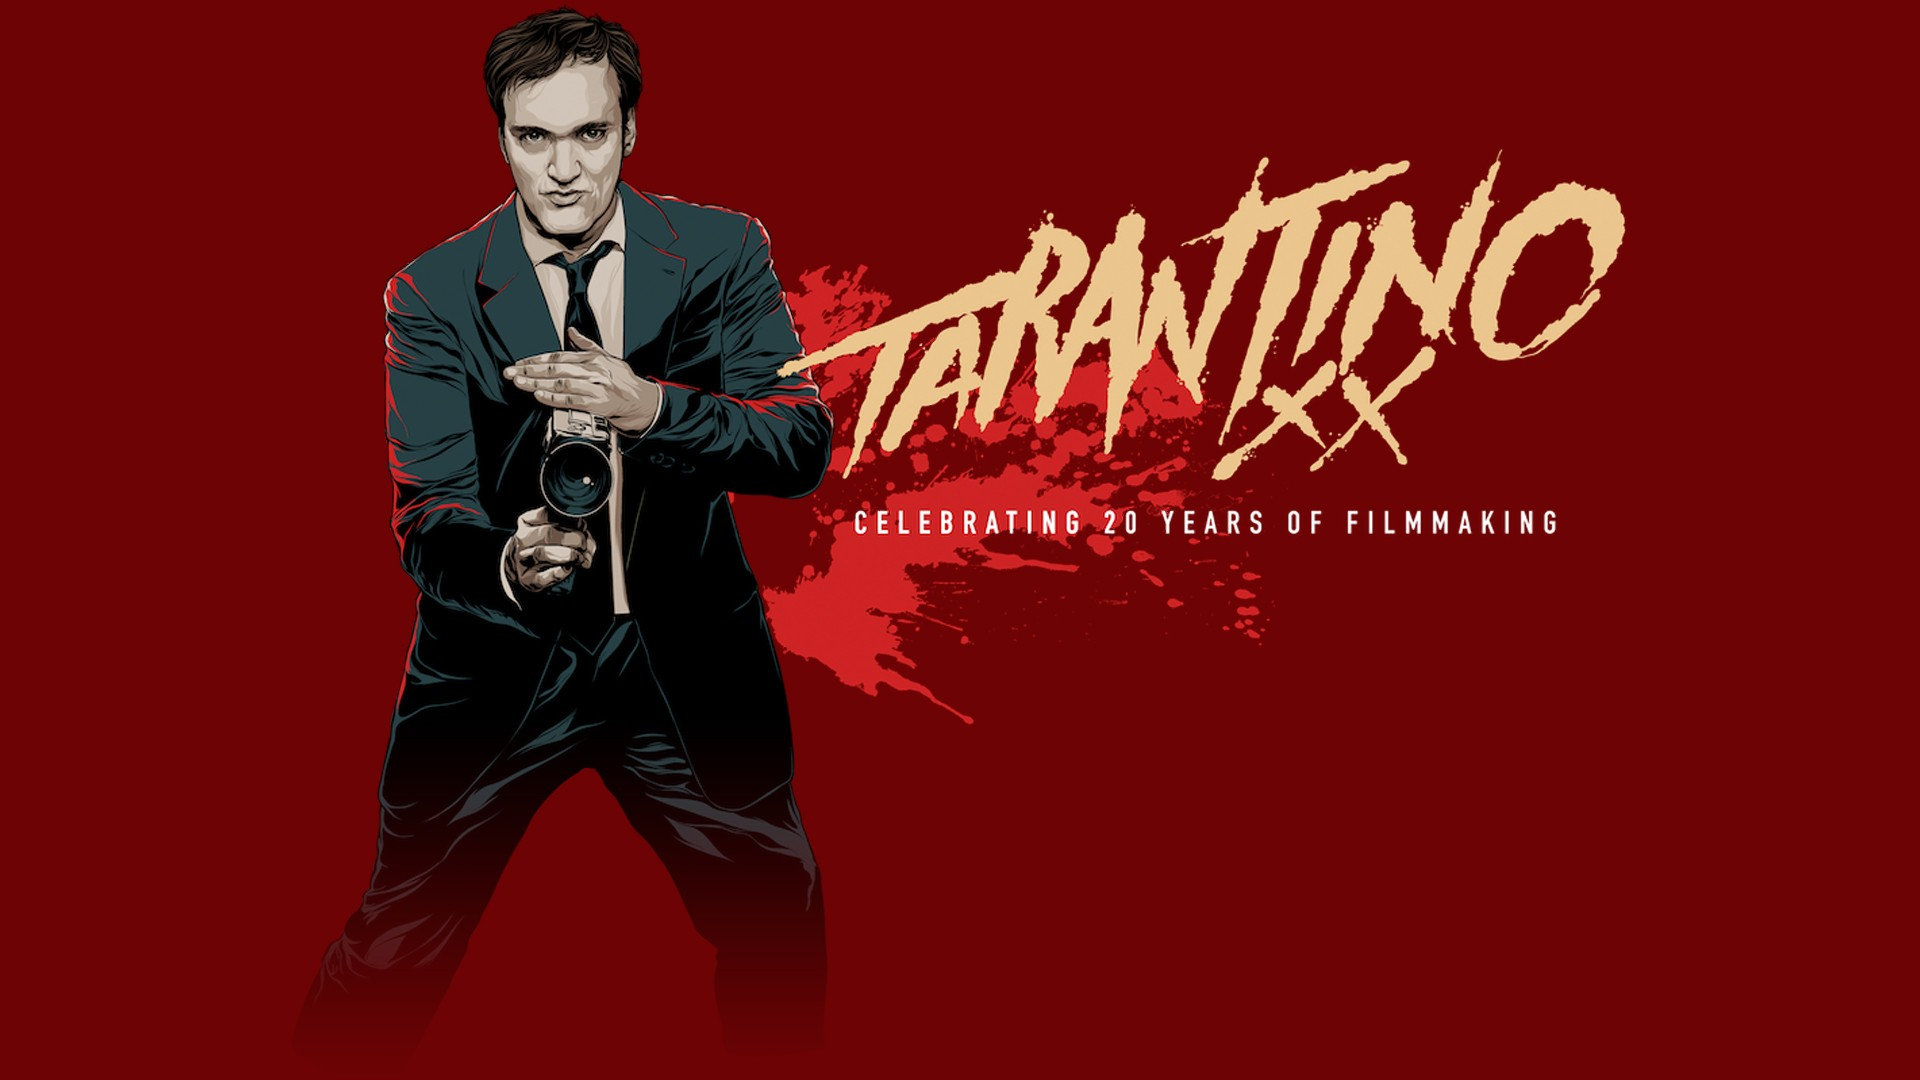 Tuxedo Wallpaper Hd Quentin Tarantino Wallpapers High Resolution And Quality